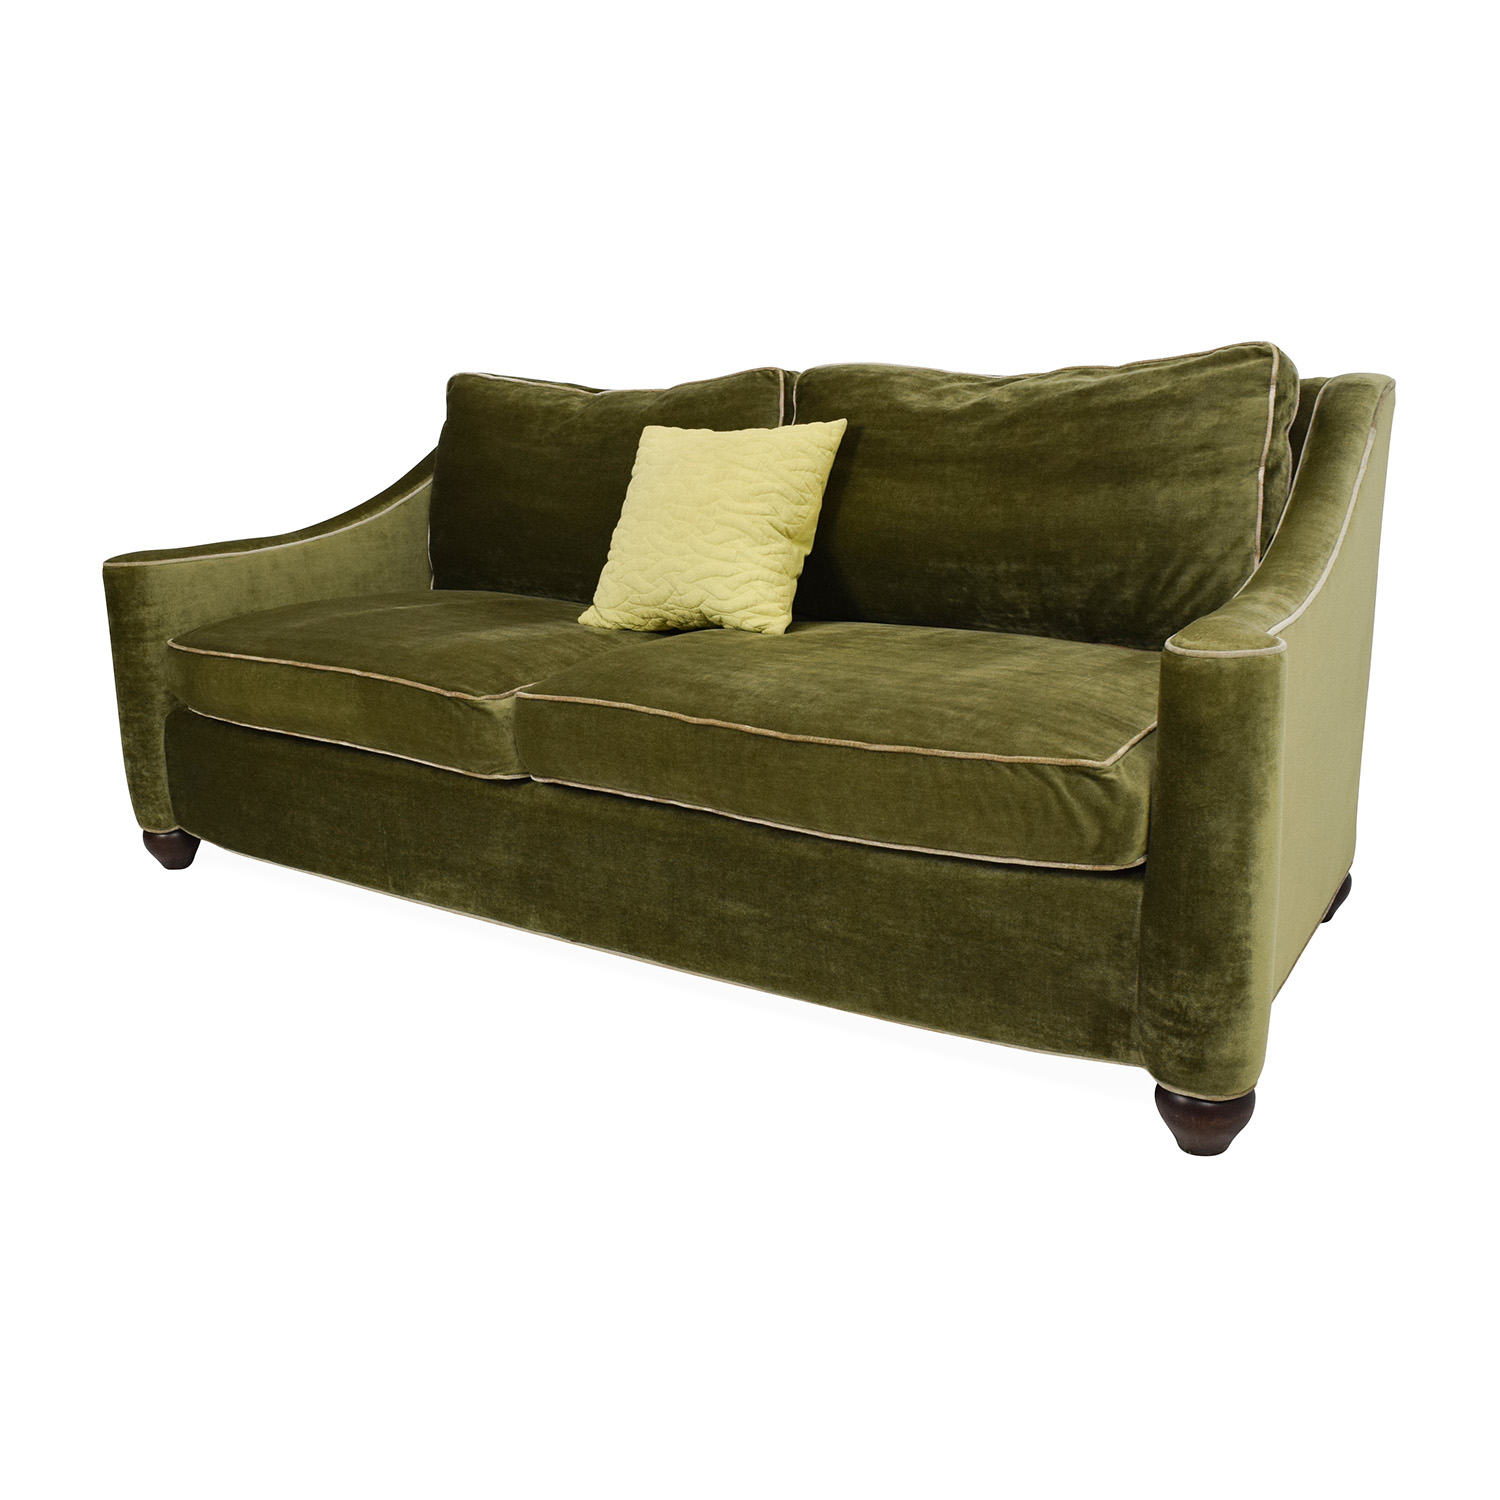 Domain Home Domain Home Classic Sofa on sale. 80  OFF   Domain Home Domain Home Classic Sofa   Sofas